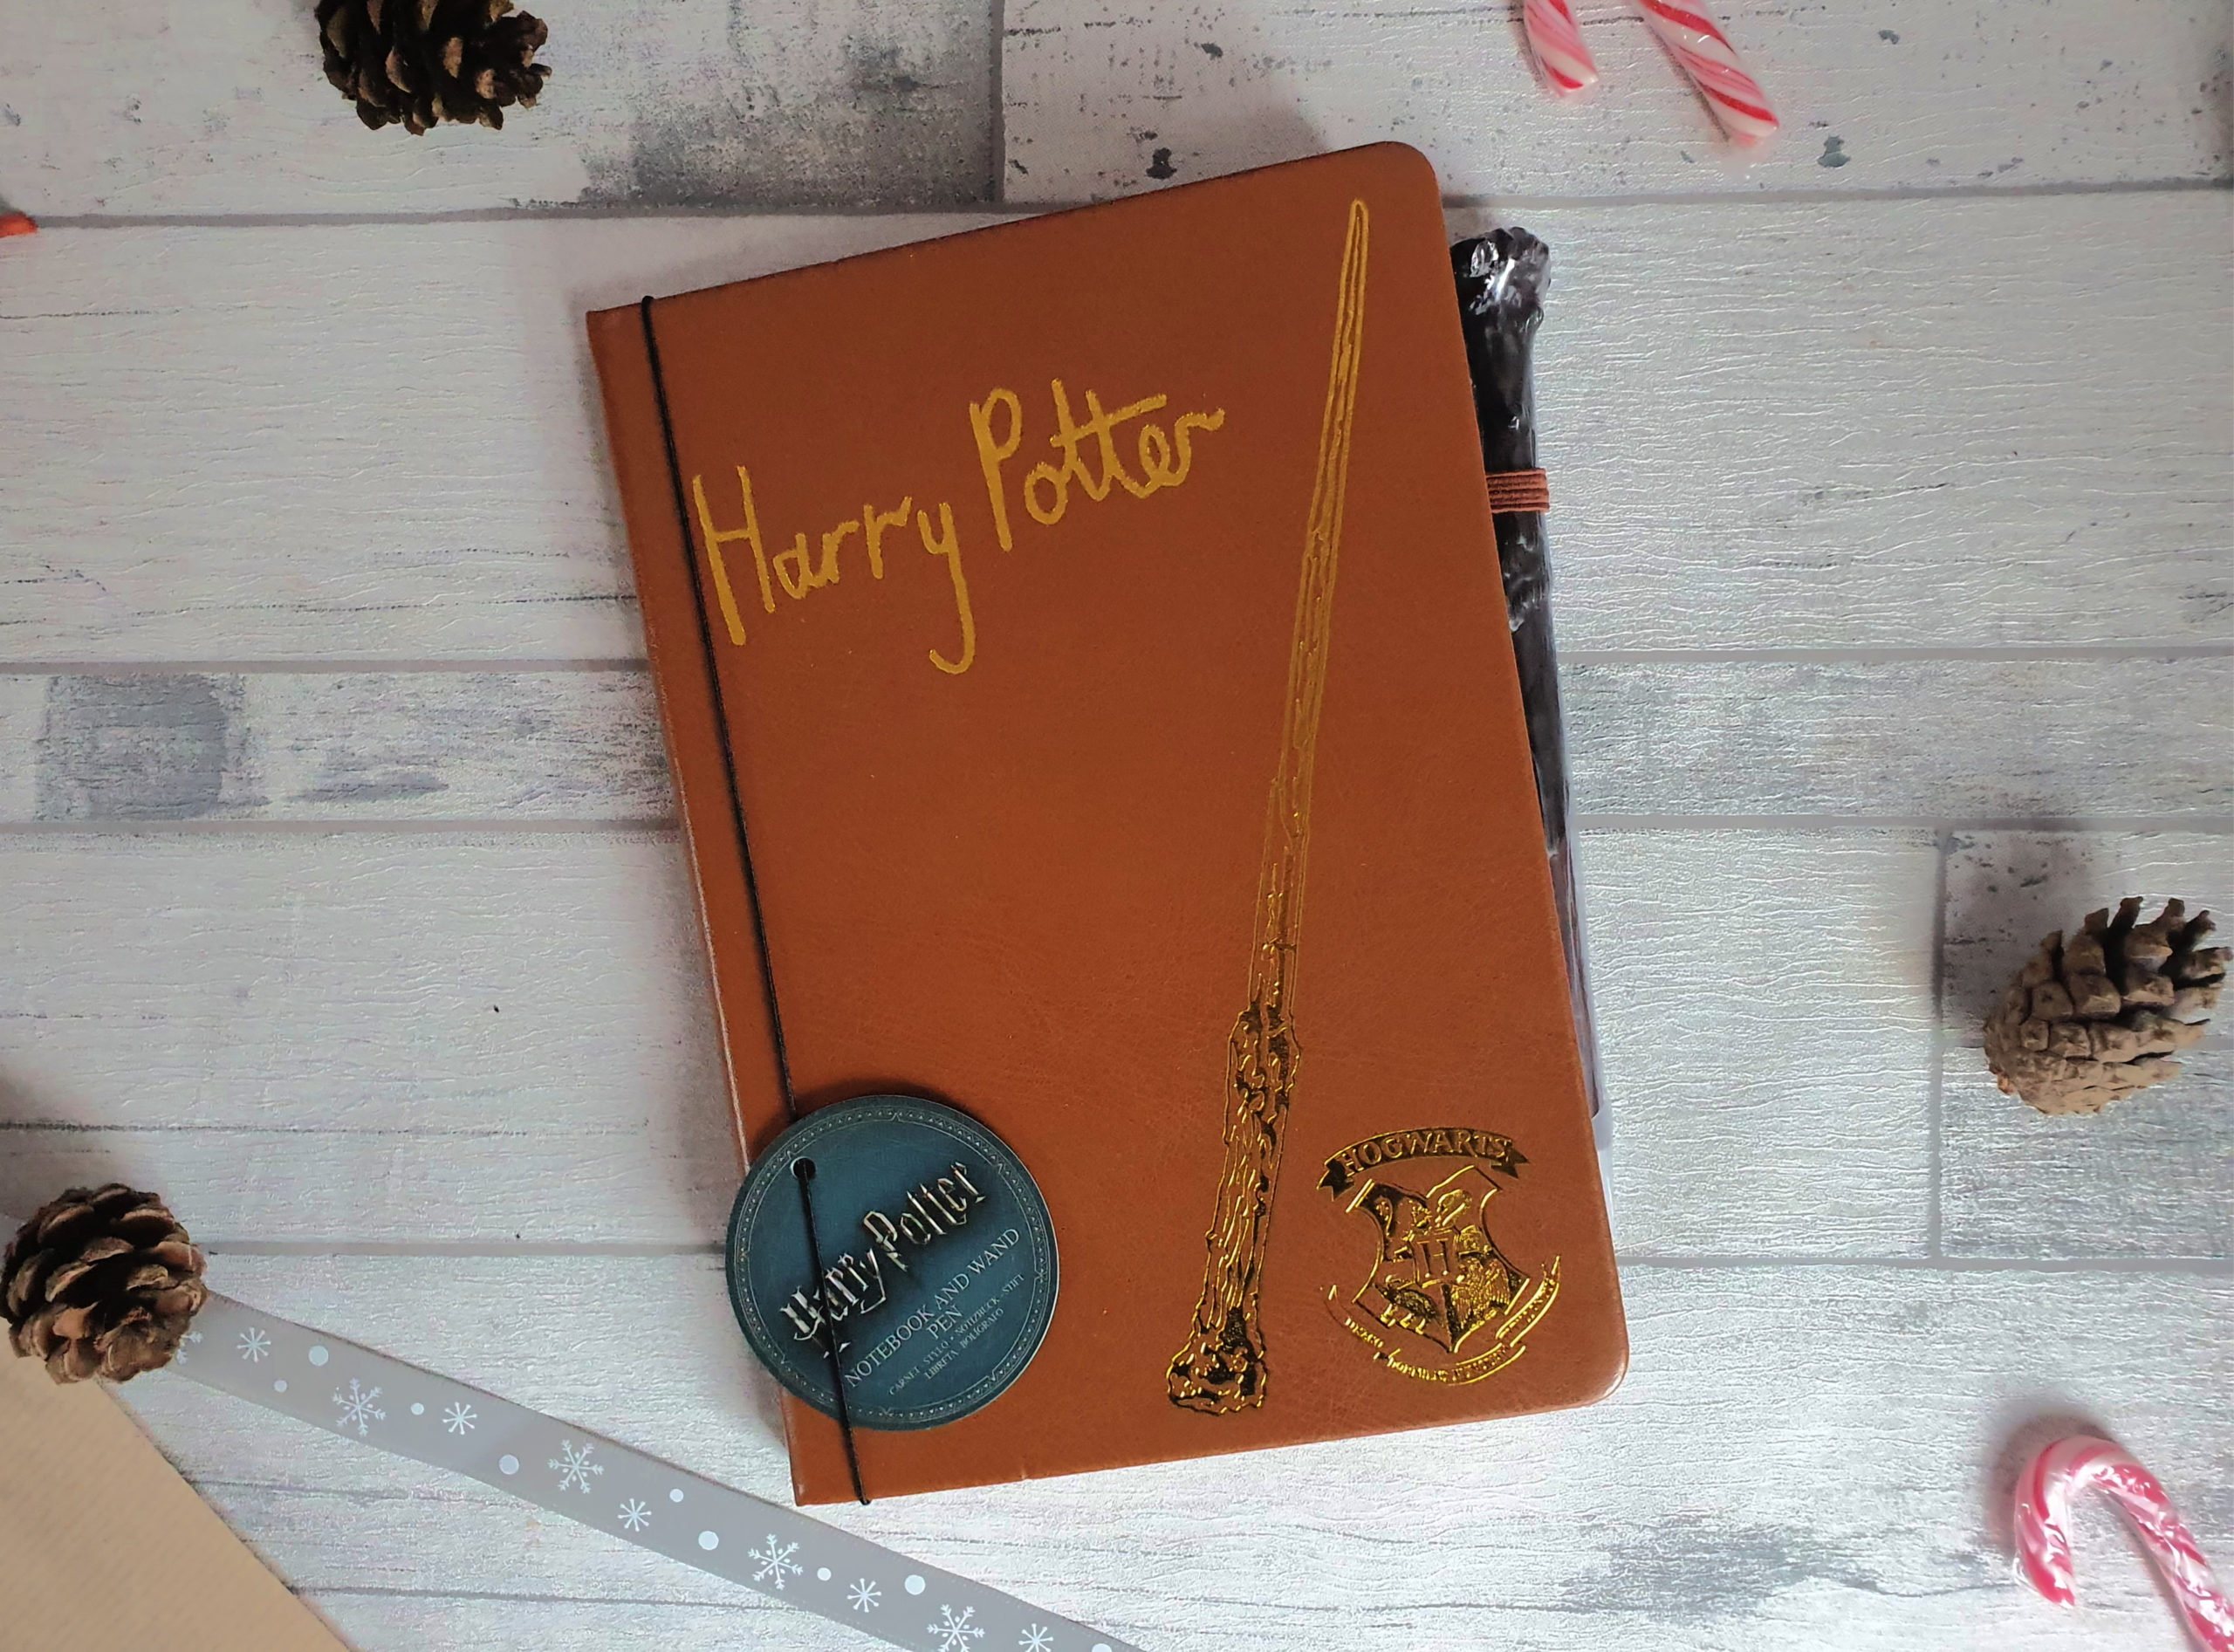 Notebook and wand pen, Harry Potter written on the front